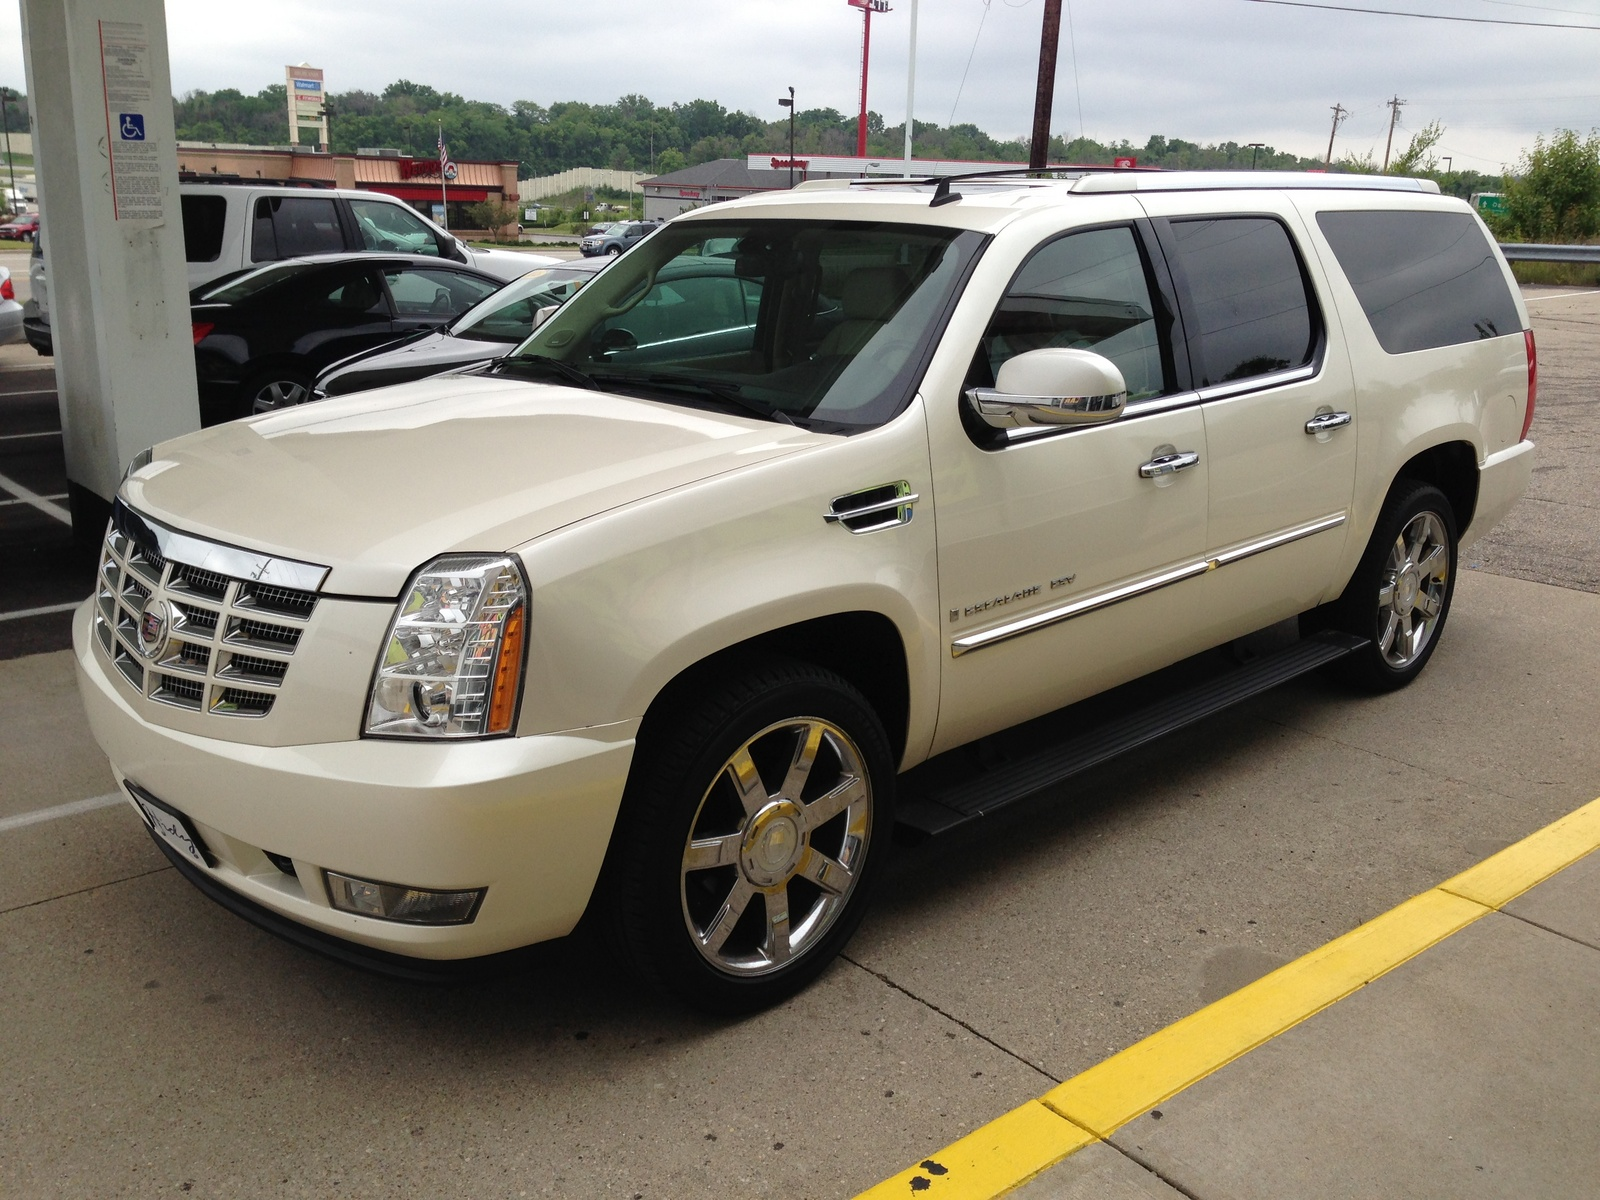 to platinum on for sale cadillac run news escalade escalades